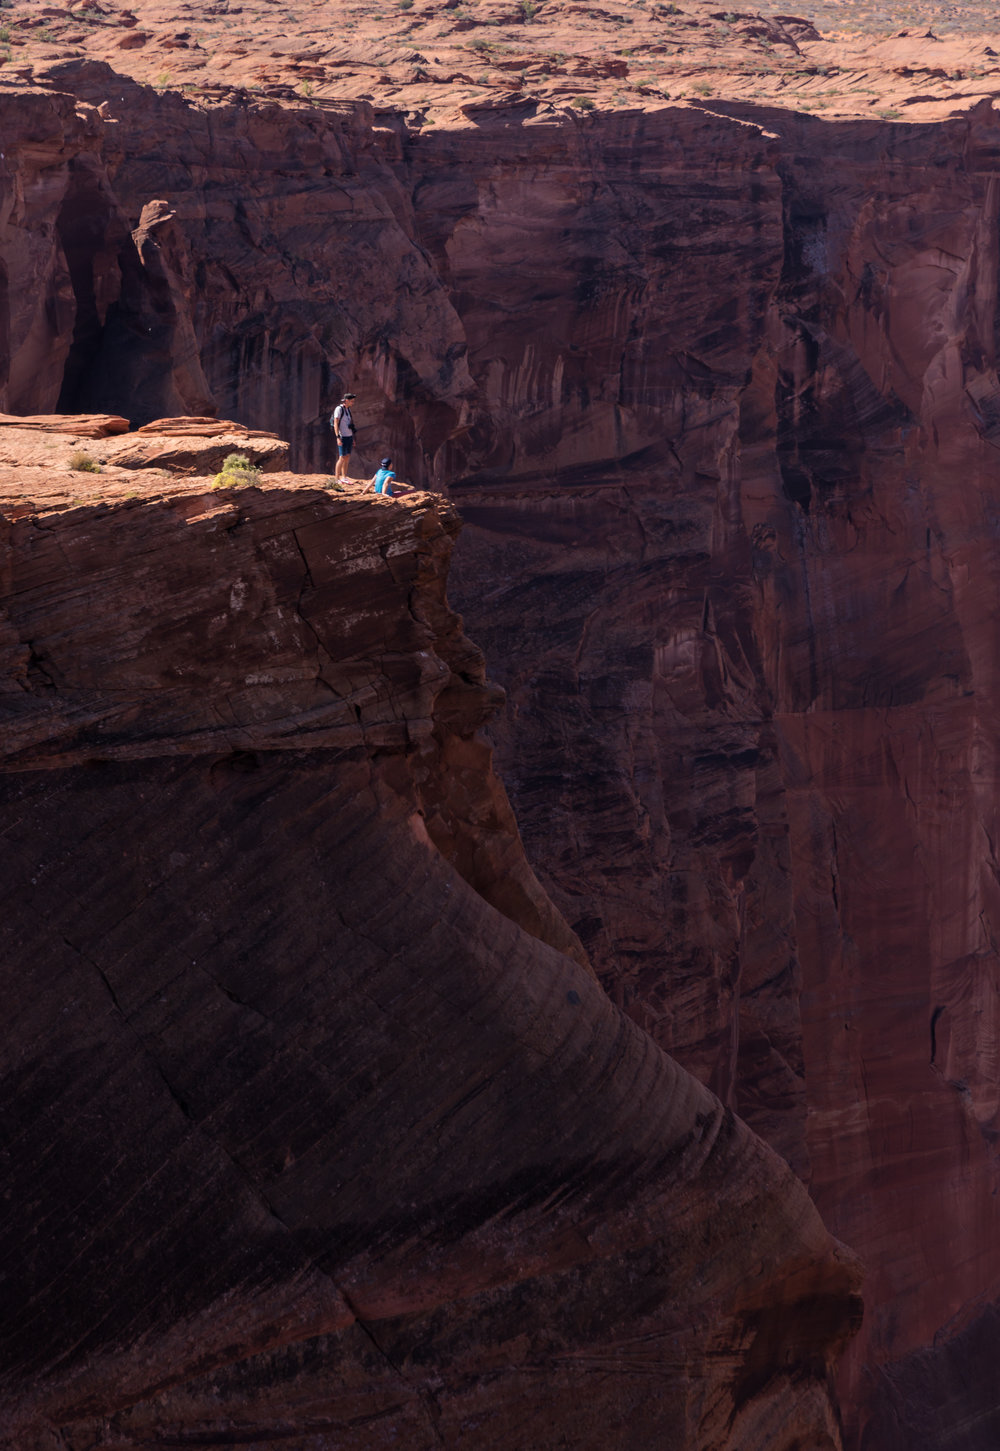 The Edge of Horseshoe Bend